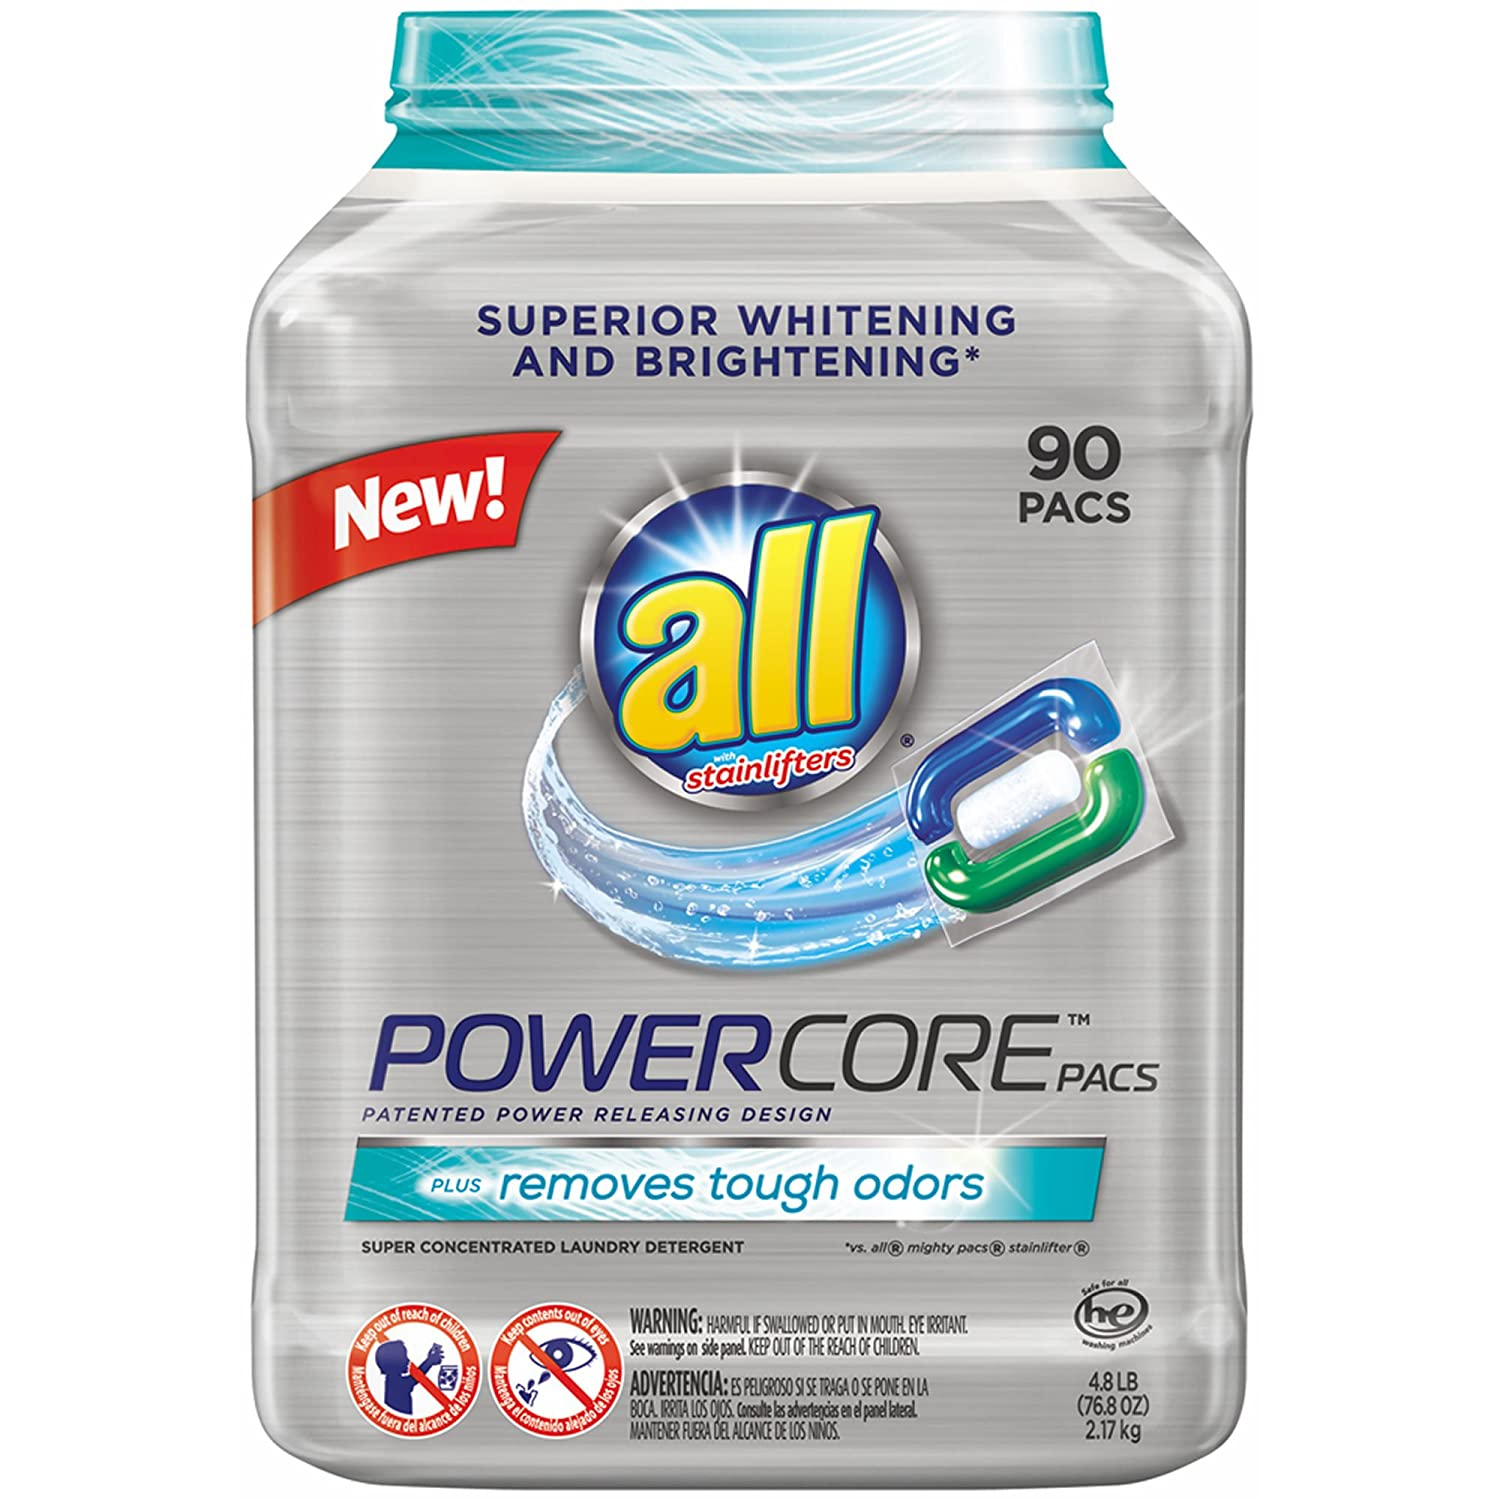 Amazon.com: All Powercore Laundry Detergent, 76.8 Fluid Ounce: Health & Personal Care